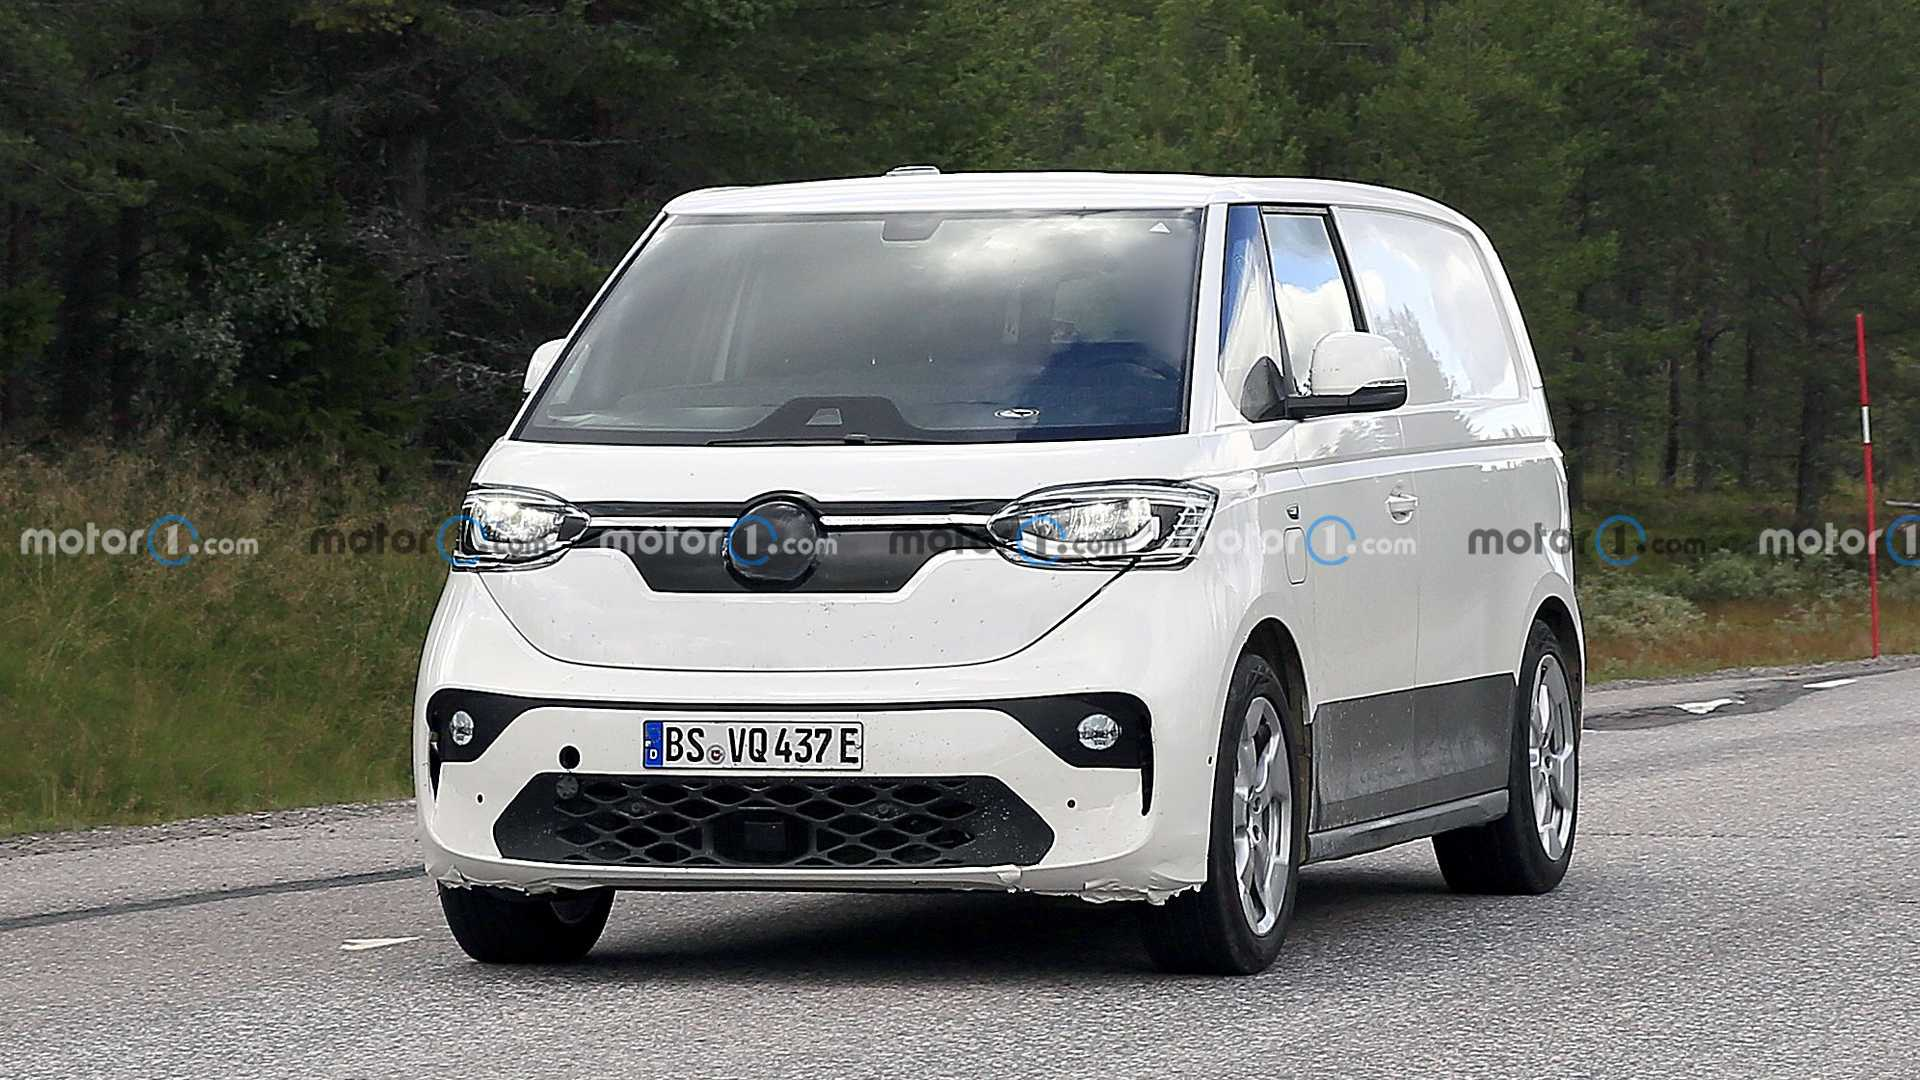 The battery-powered Volkswagen ID Buzz van has once again been spotted running its pre-production tests. The premiere is expected next year, and sales in North America should begin in the second half of 2023.